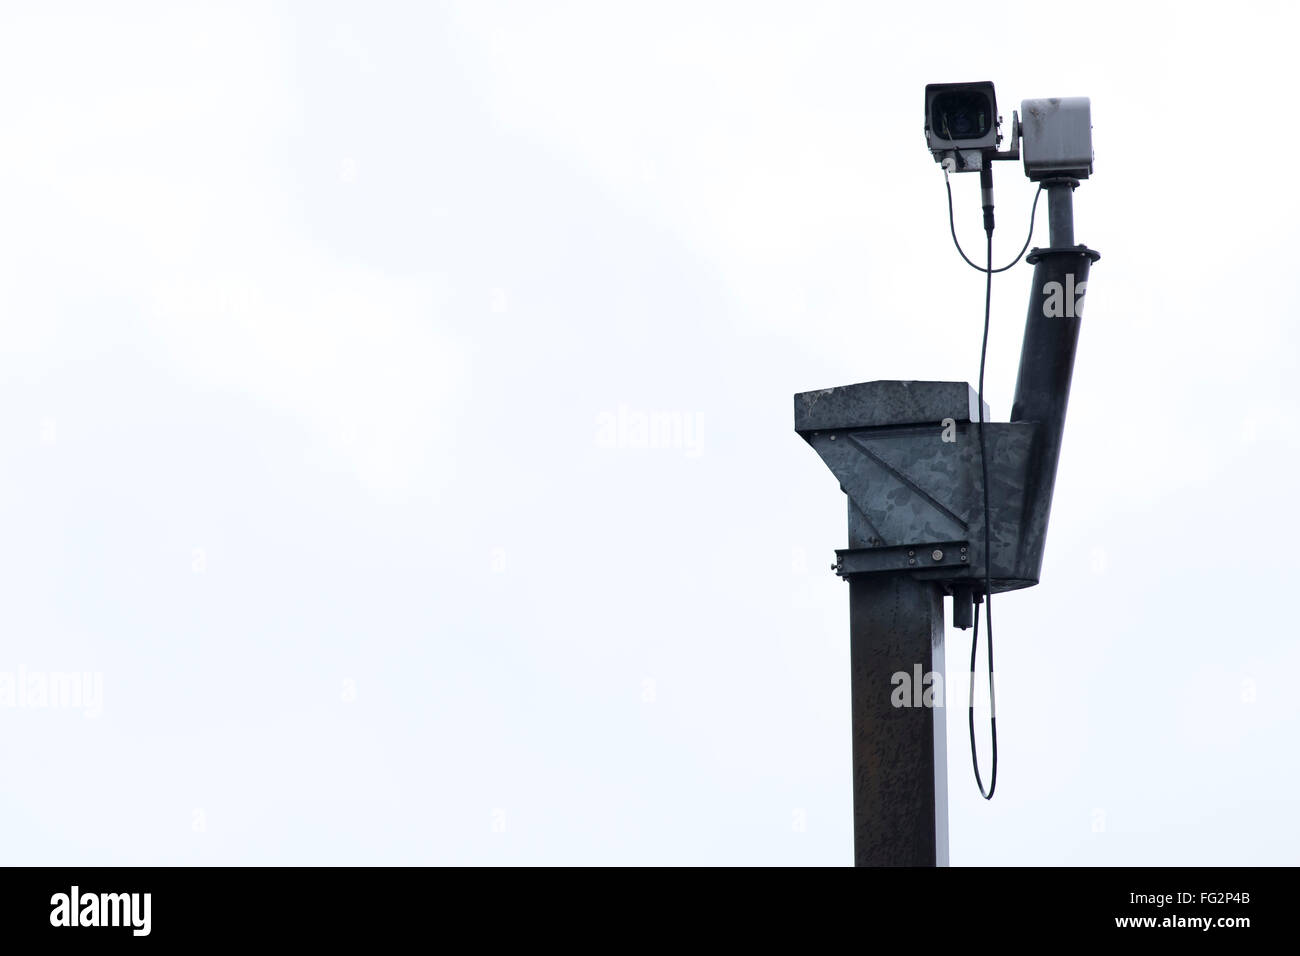 CCTV security camera against a plain background. - Stock Image